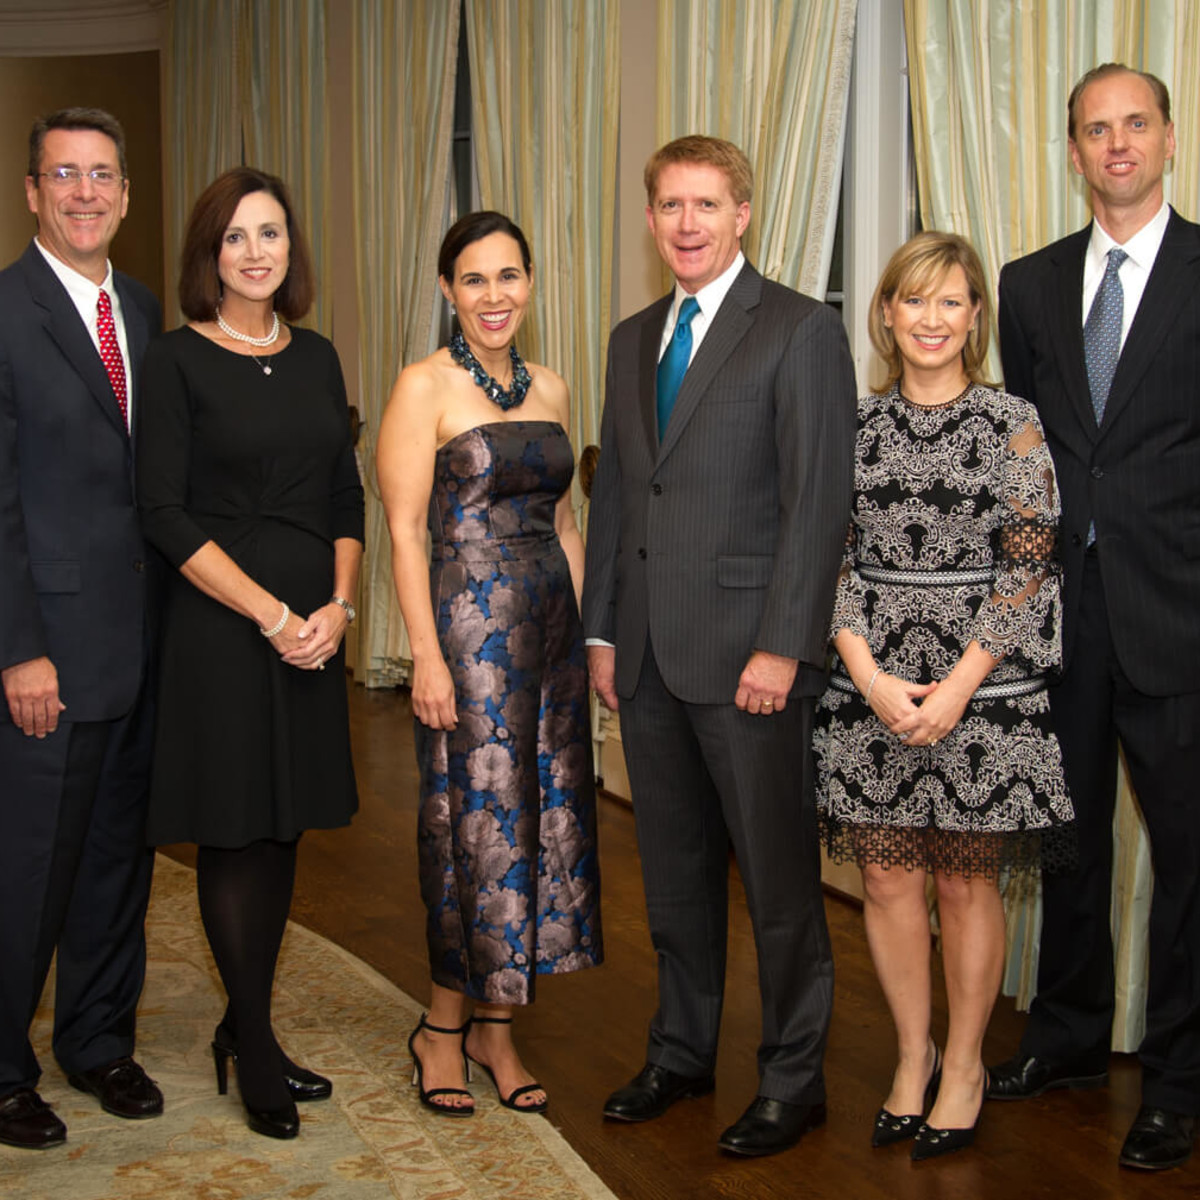 Houston, Legal Community's Harvest Celebration, Nov 2016, Tom Ganucheau, Lisa Ganucheau, Dana Levy Kelly, Neil Kelly, Denise Scofield, John Scofield